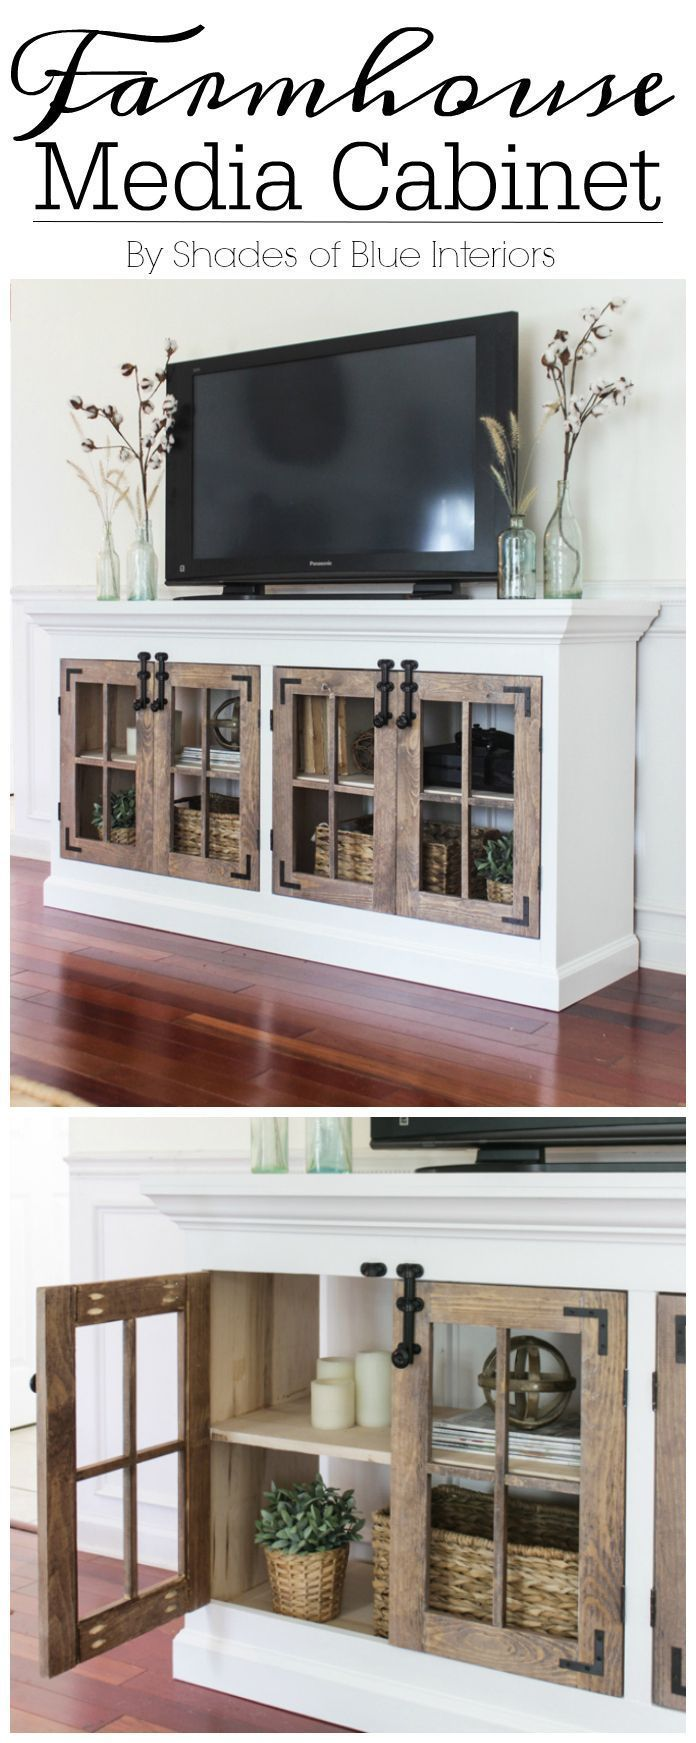 Farmhouse Media Cabinet With Lots Of Storage, Double 4 Pane Cabinet Doors  On Each Side